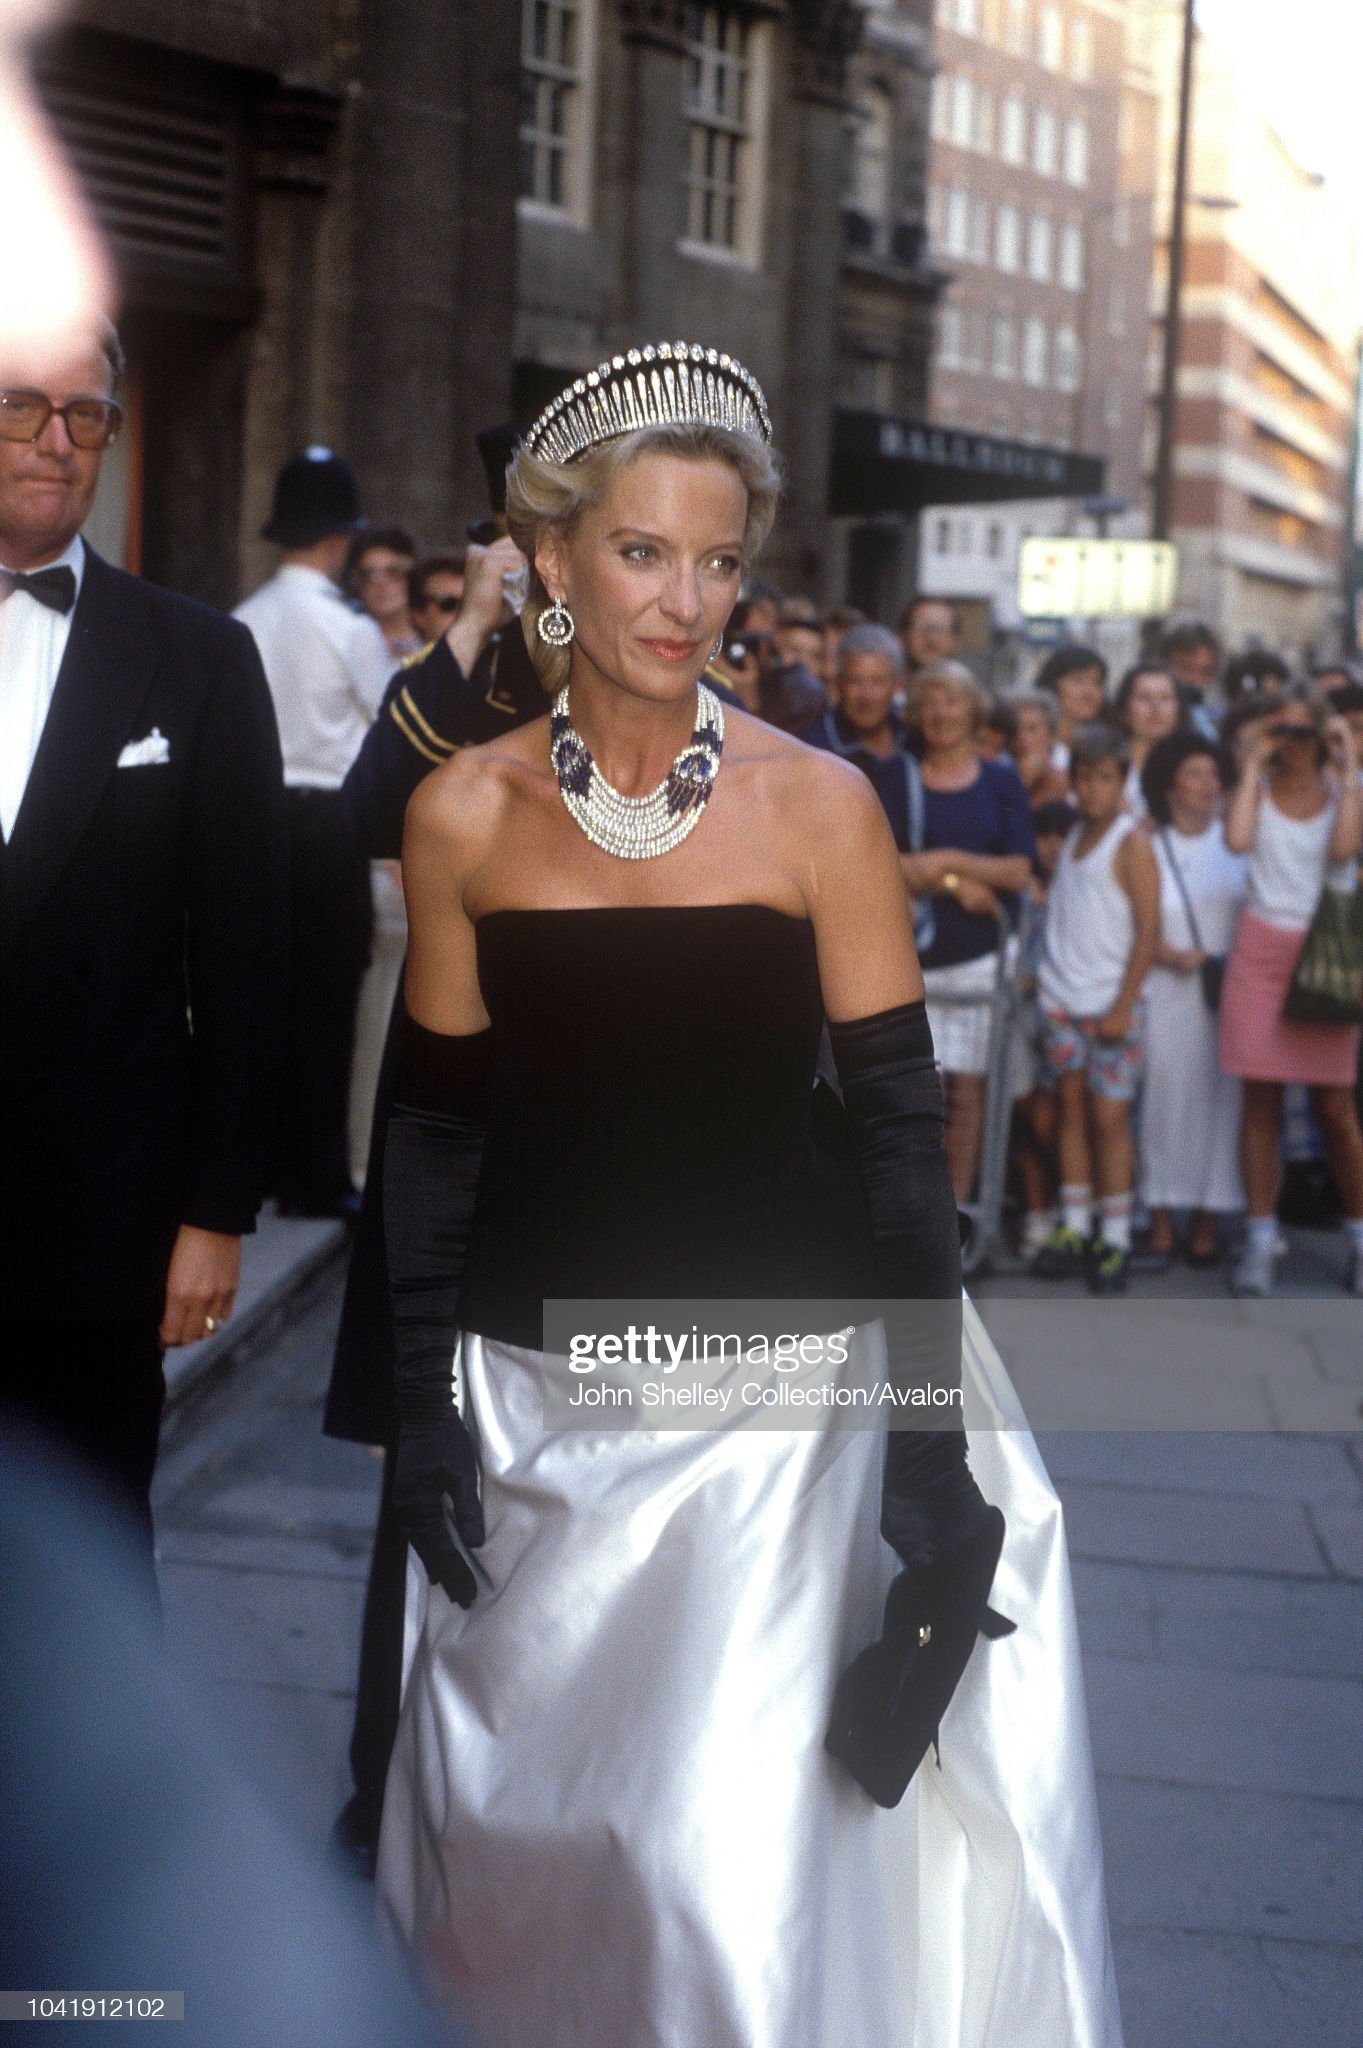 Princess Michael of Kent archive : News Photo